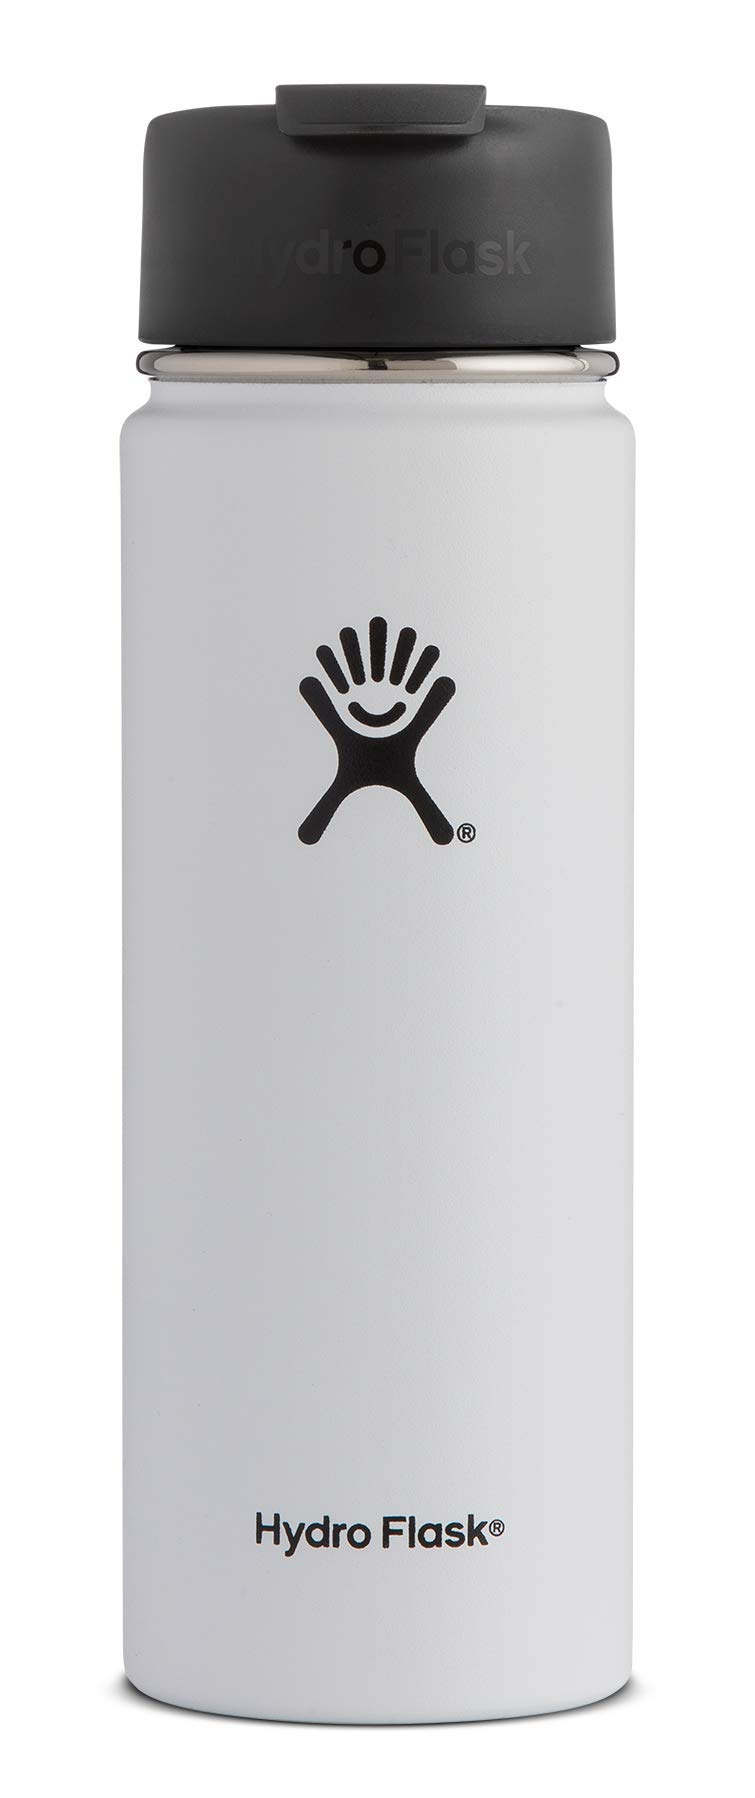 Hydro Flask 20 oz Travel Coffee Flask | Stainless Steel & Vacuum Insulated | Wide Mouth with Hydro Flip Cap | White